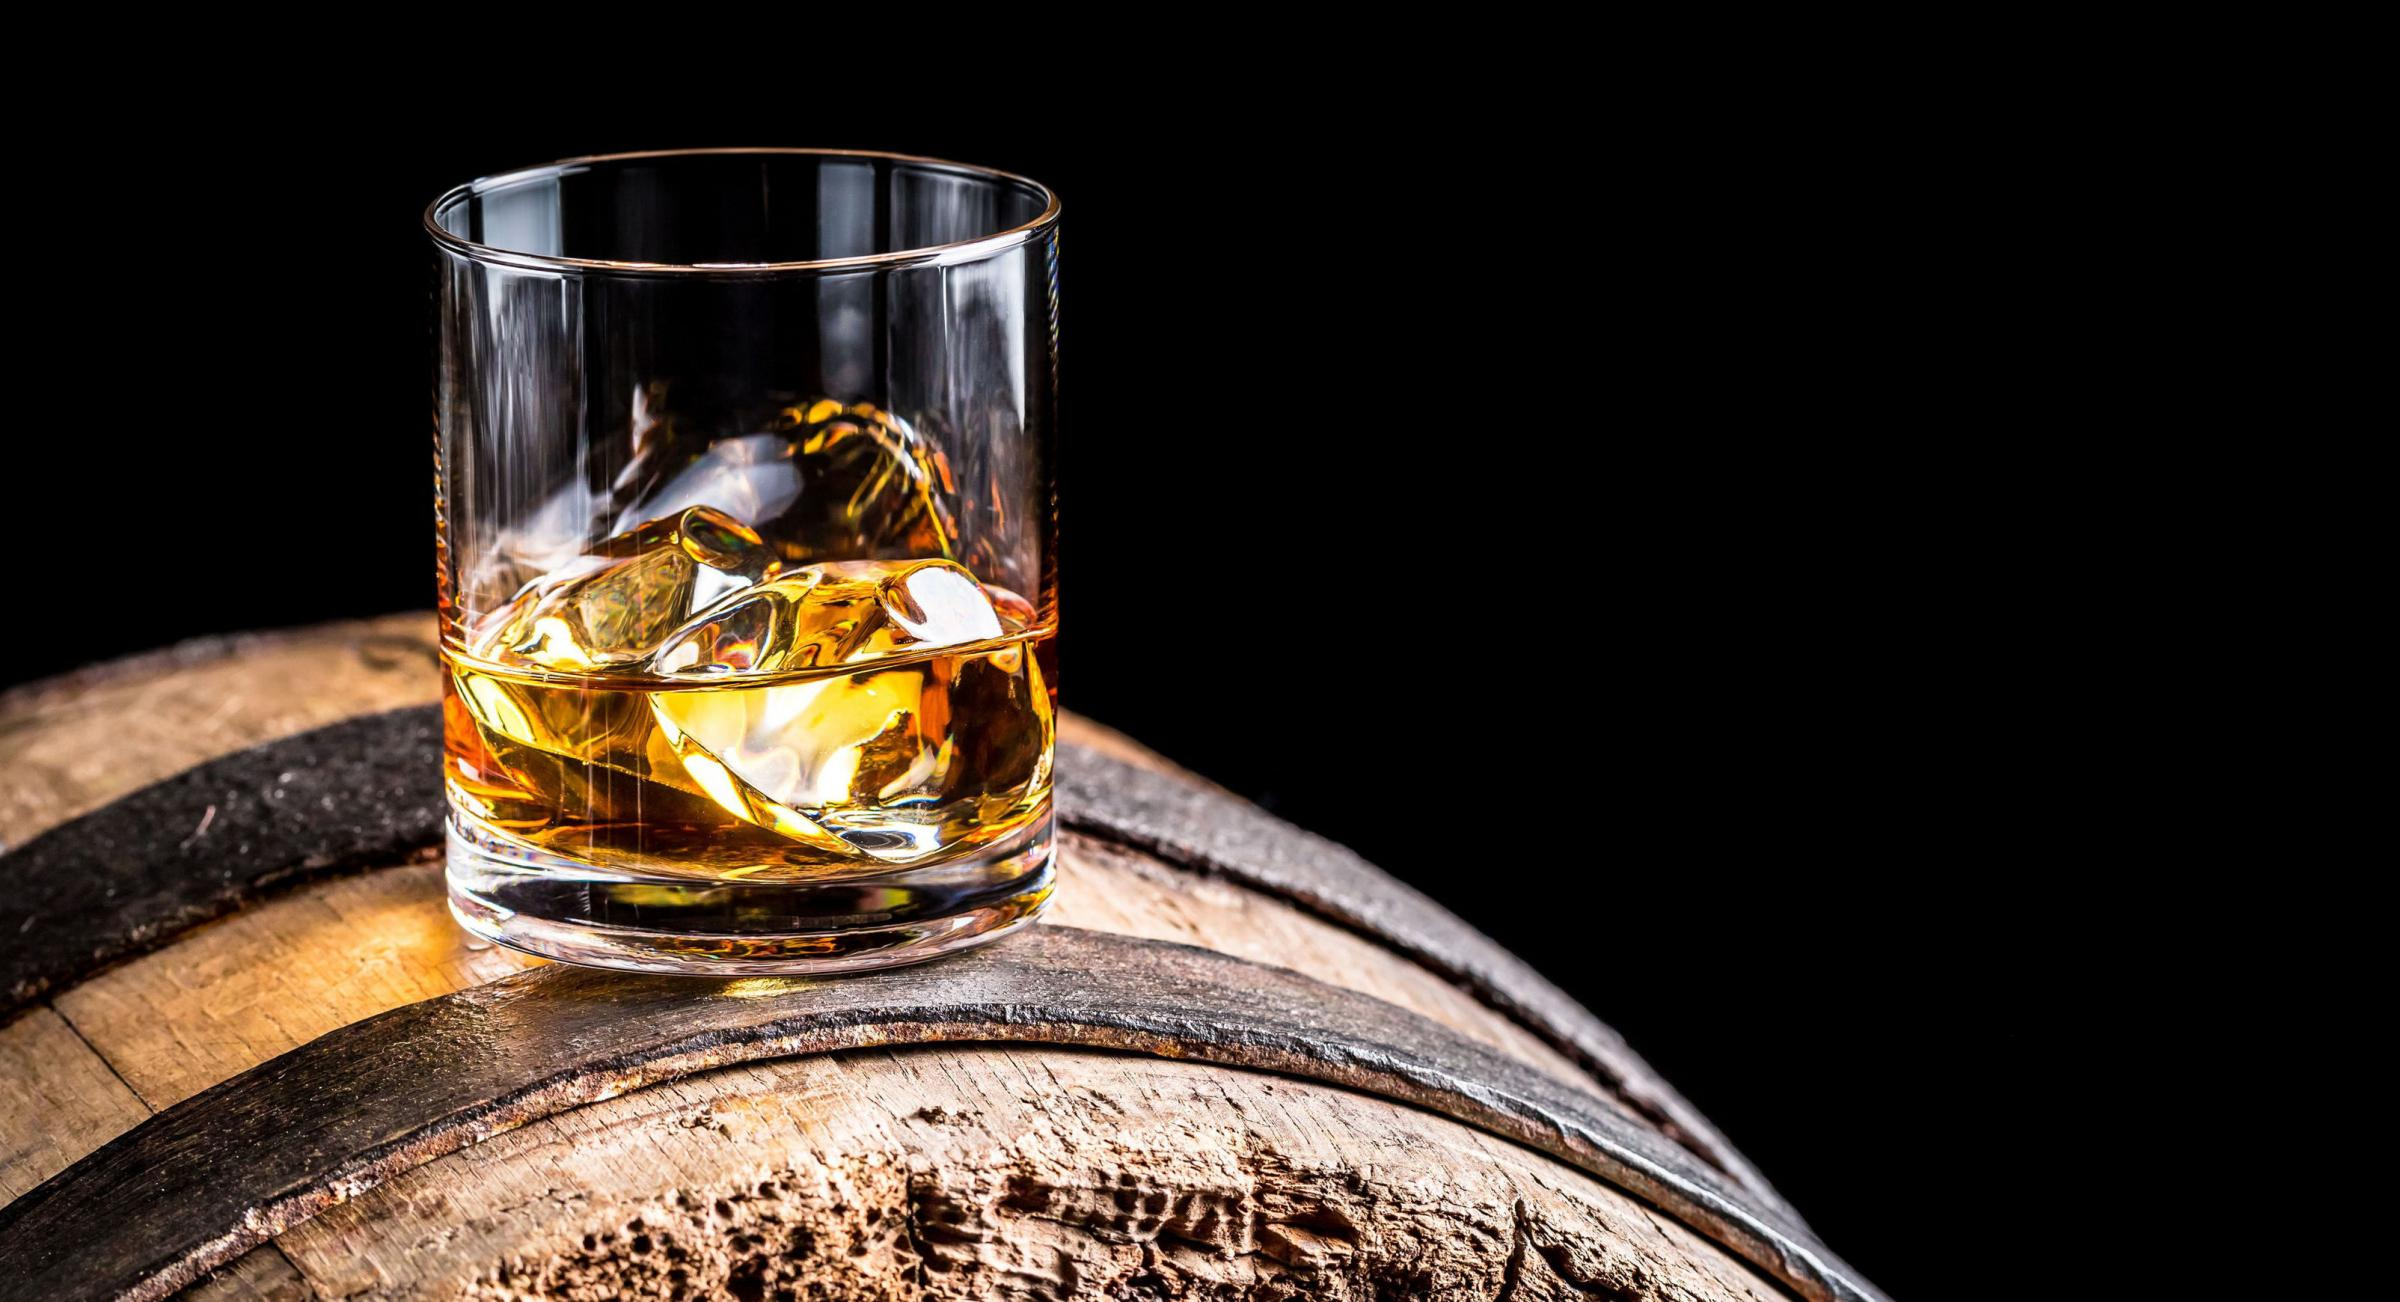 The value of collectable bottles of Single Malt Scotch whisky sold at auction in the UK rose by 62.7%